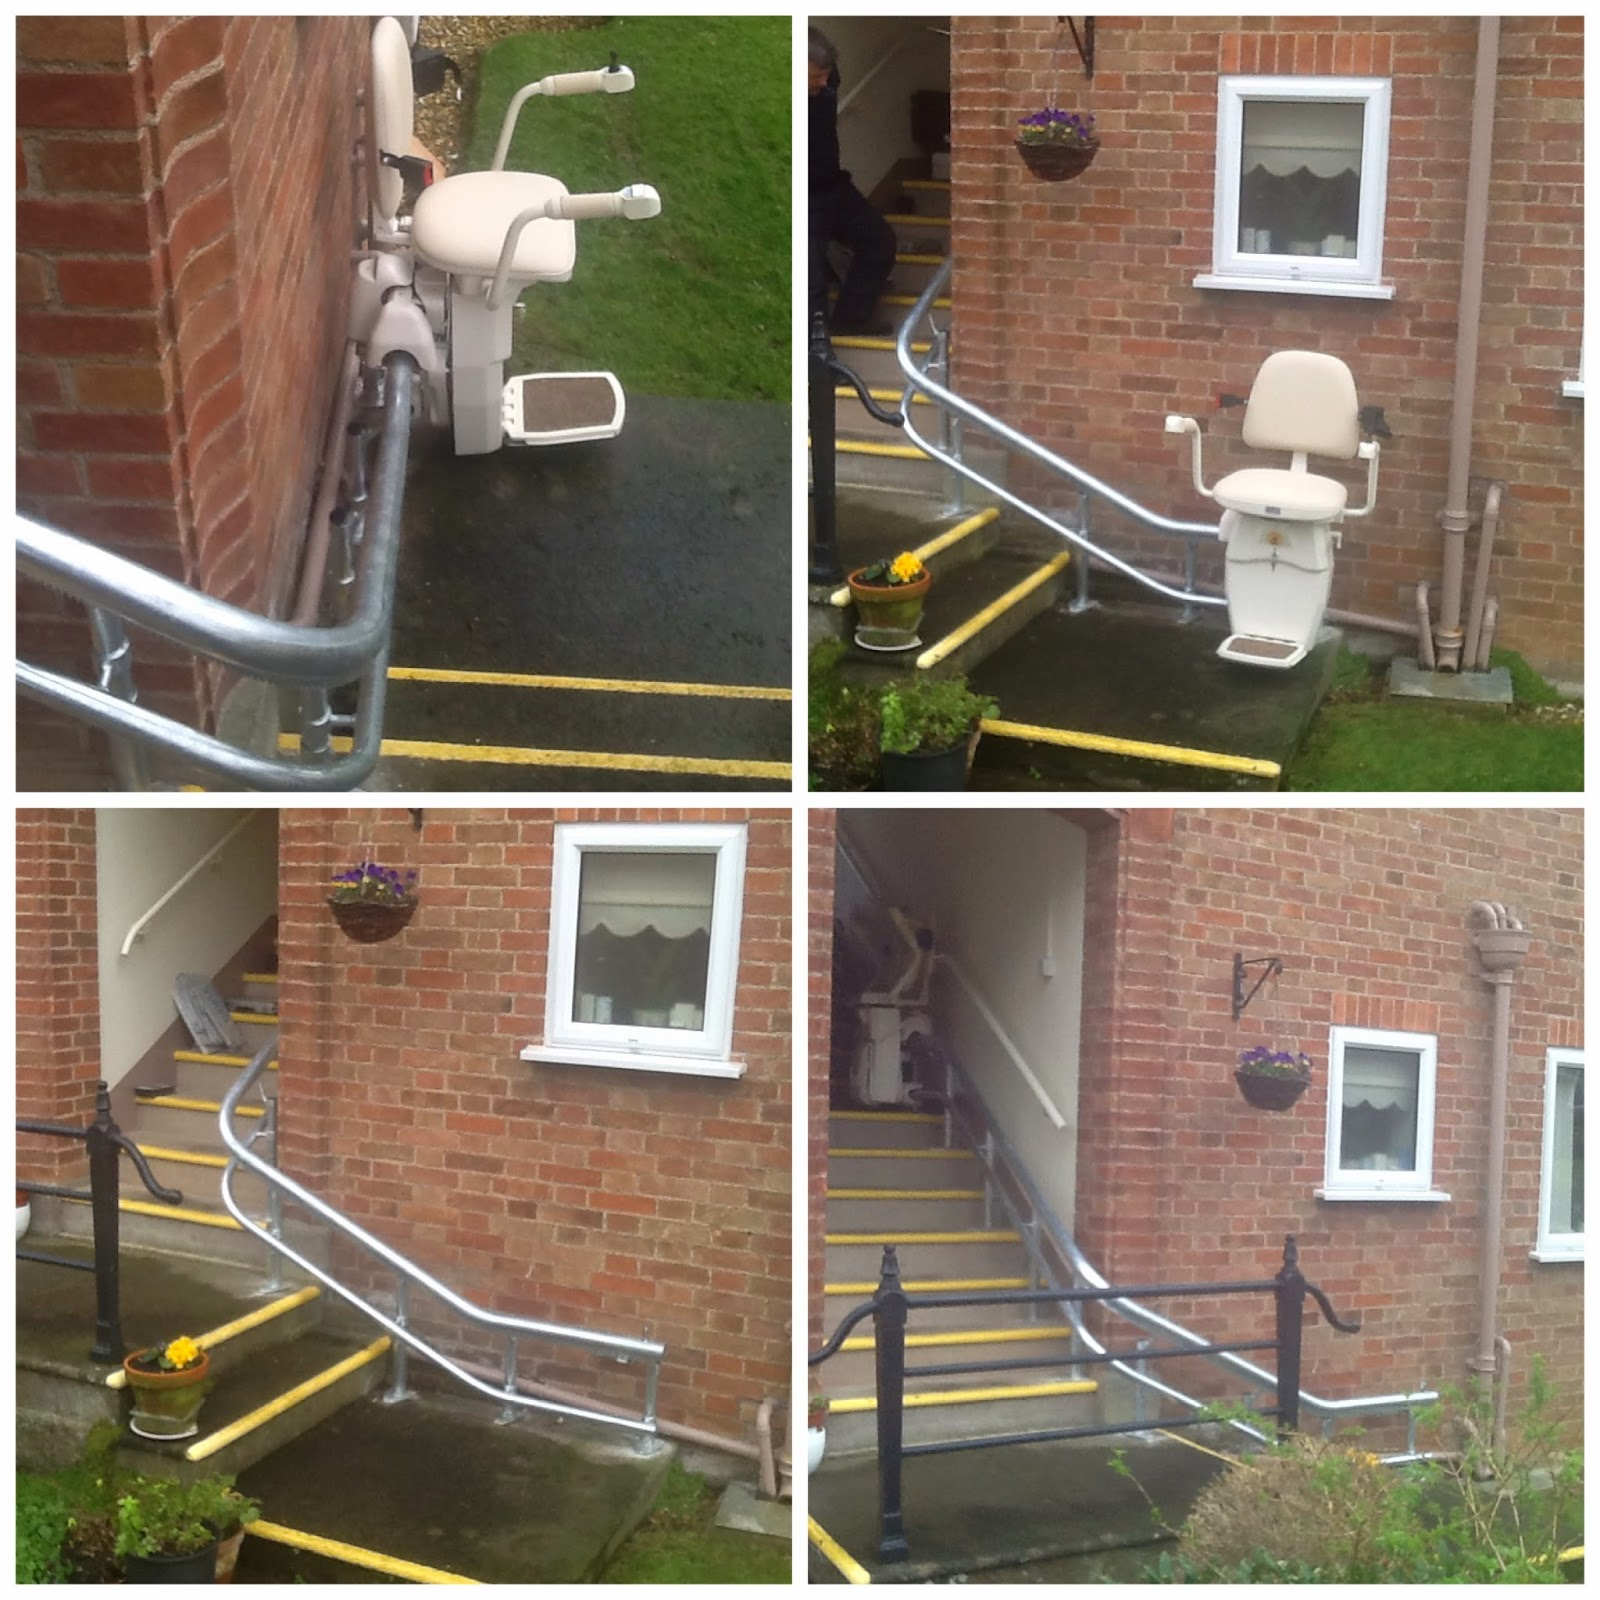 Hawle external stairlift installed by Dolphin Lifts